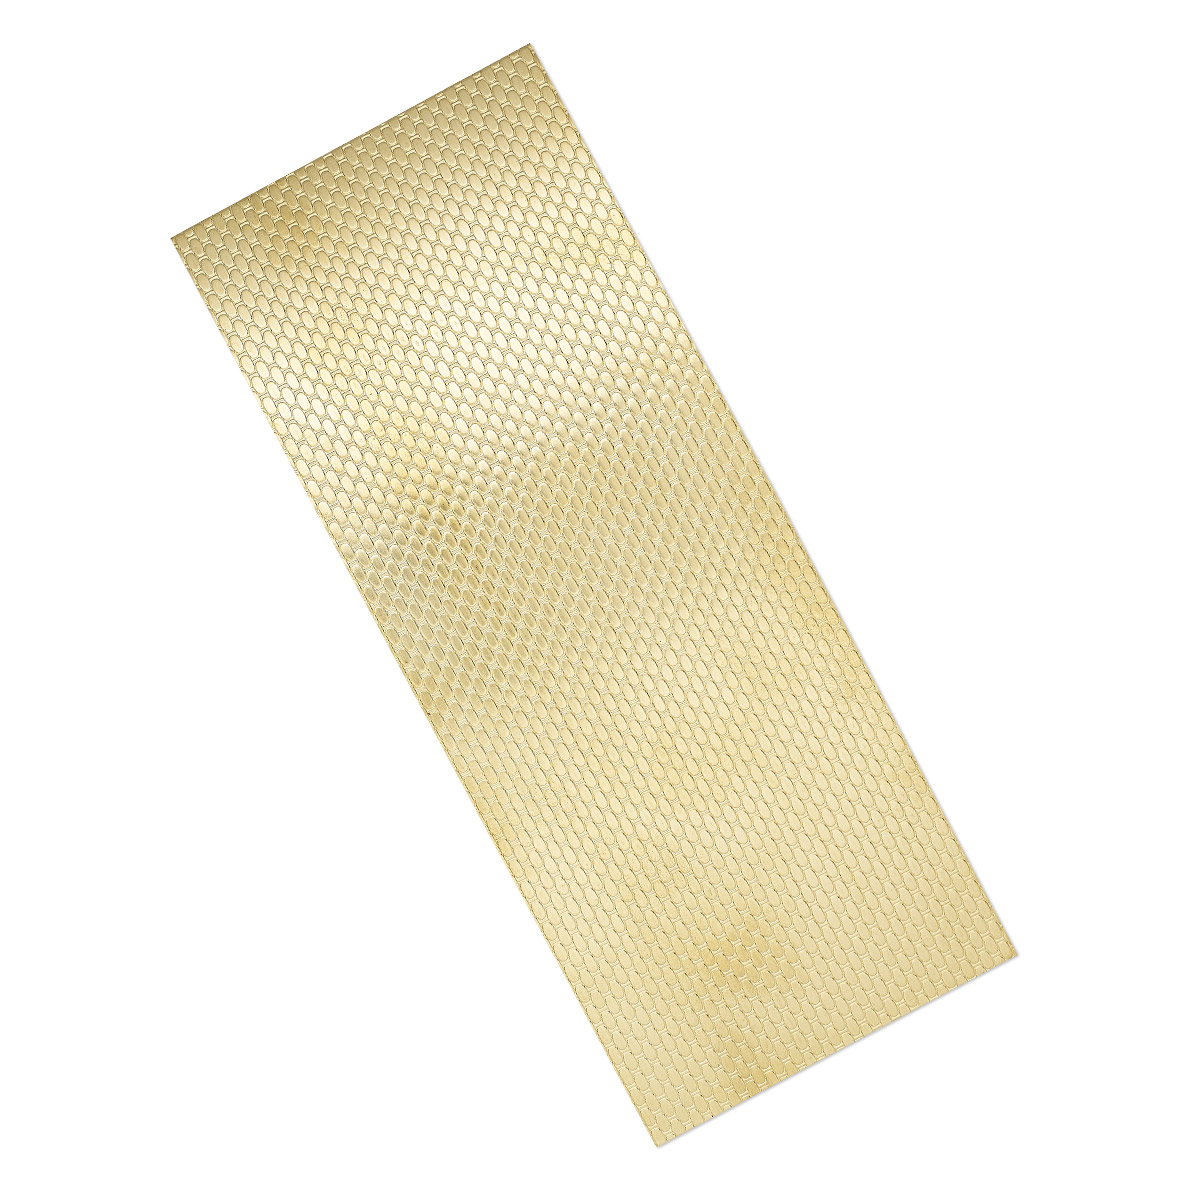 Sheet Brass 6x2 1 2 Inch Single Sided Rectangle With